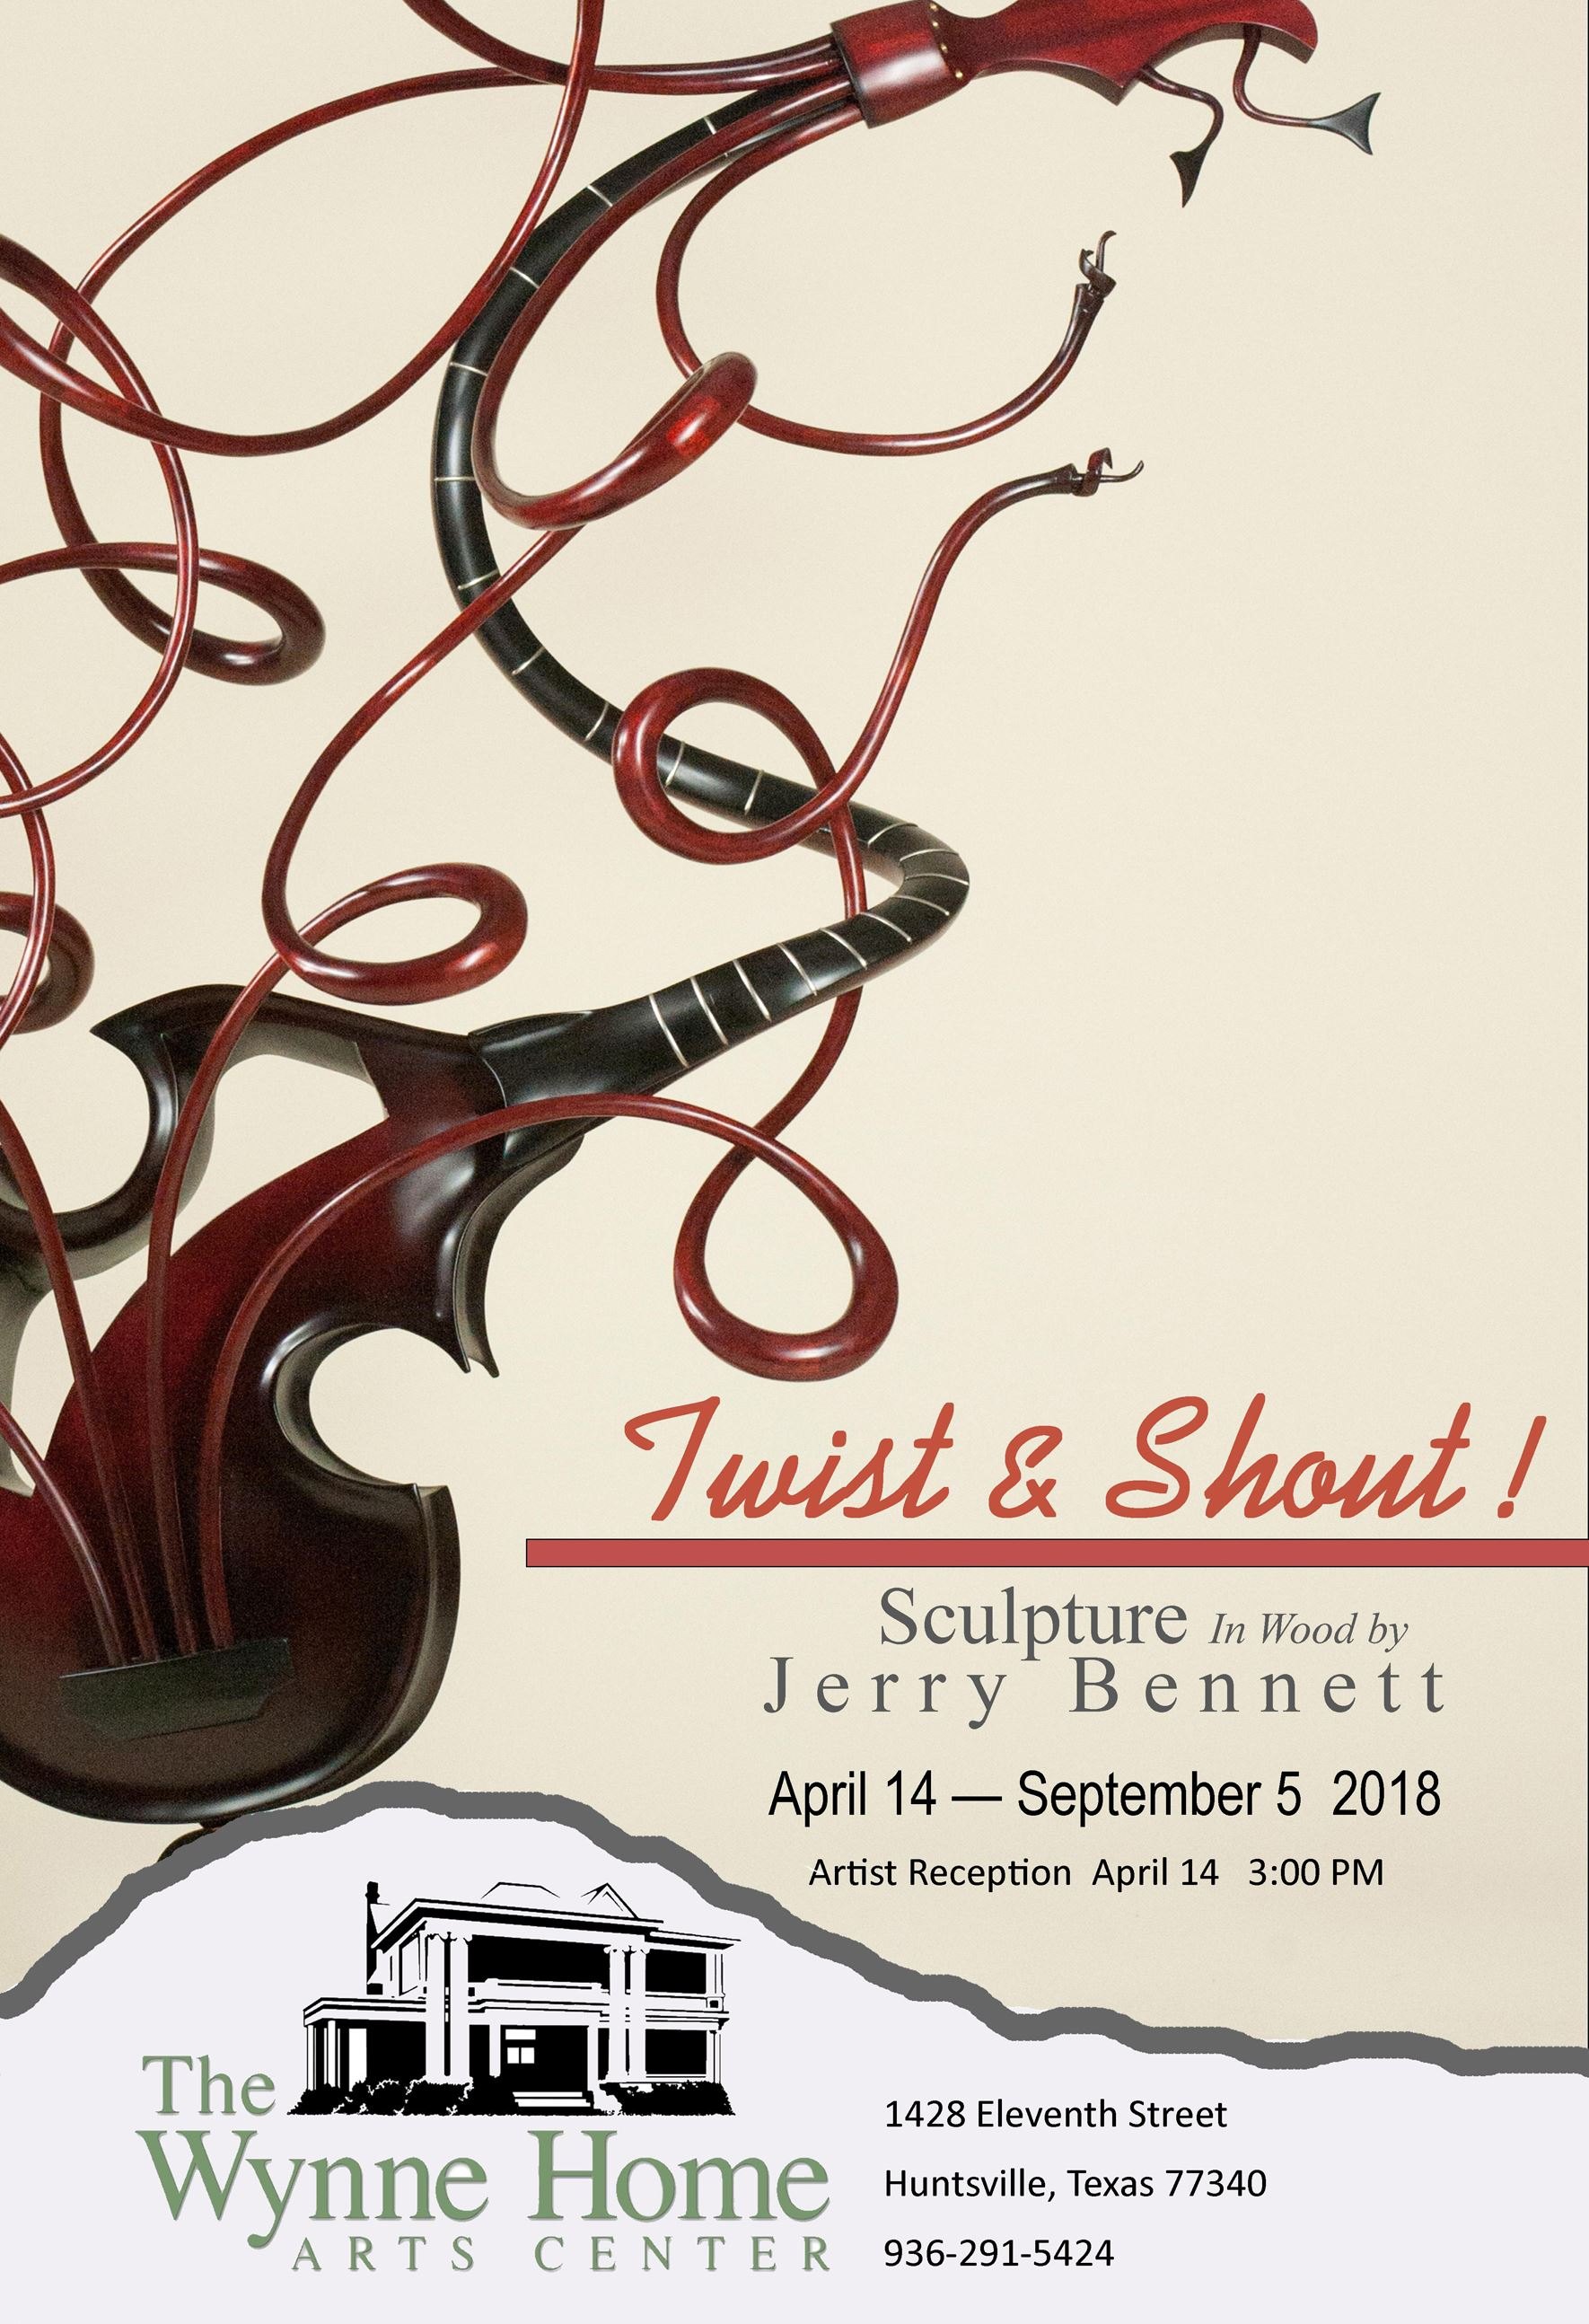 The public to enjoy Twist & Shout: Wood Sculpture by Jerry Bennett at the Wynne Home Arts and Visitors Center, 1428 Eleventh Street, through Sept. 5.